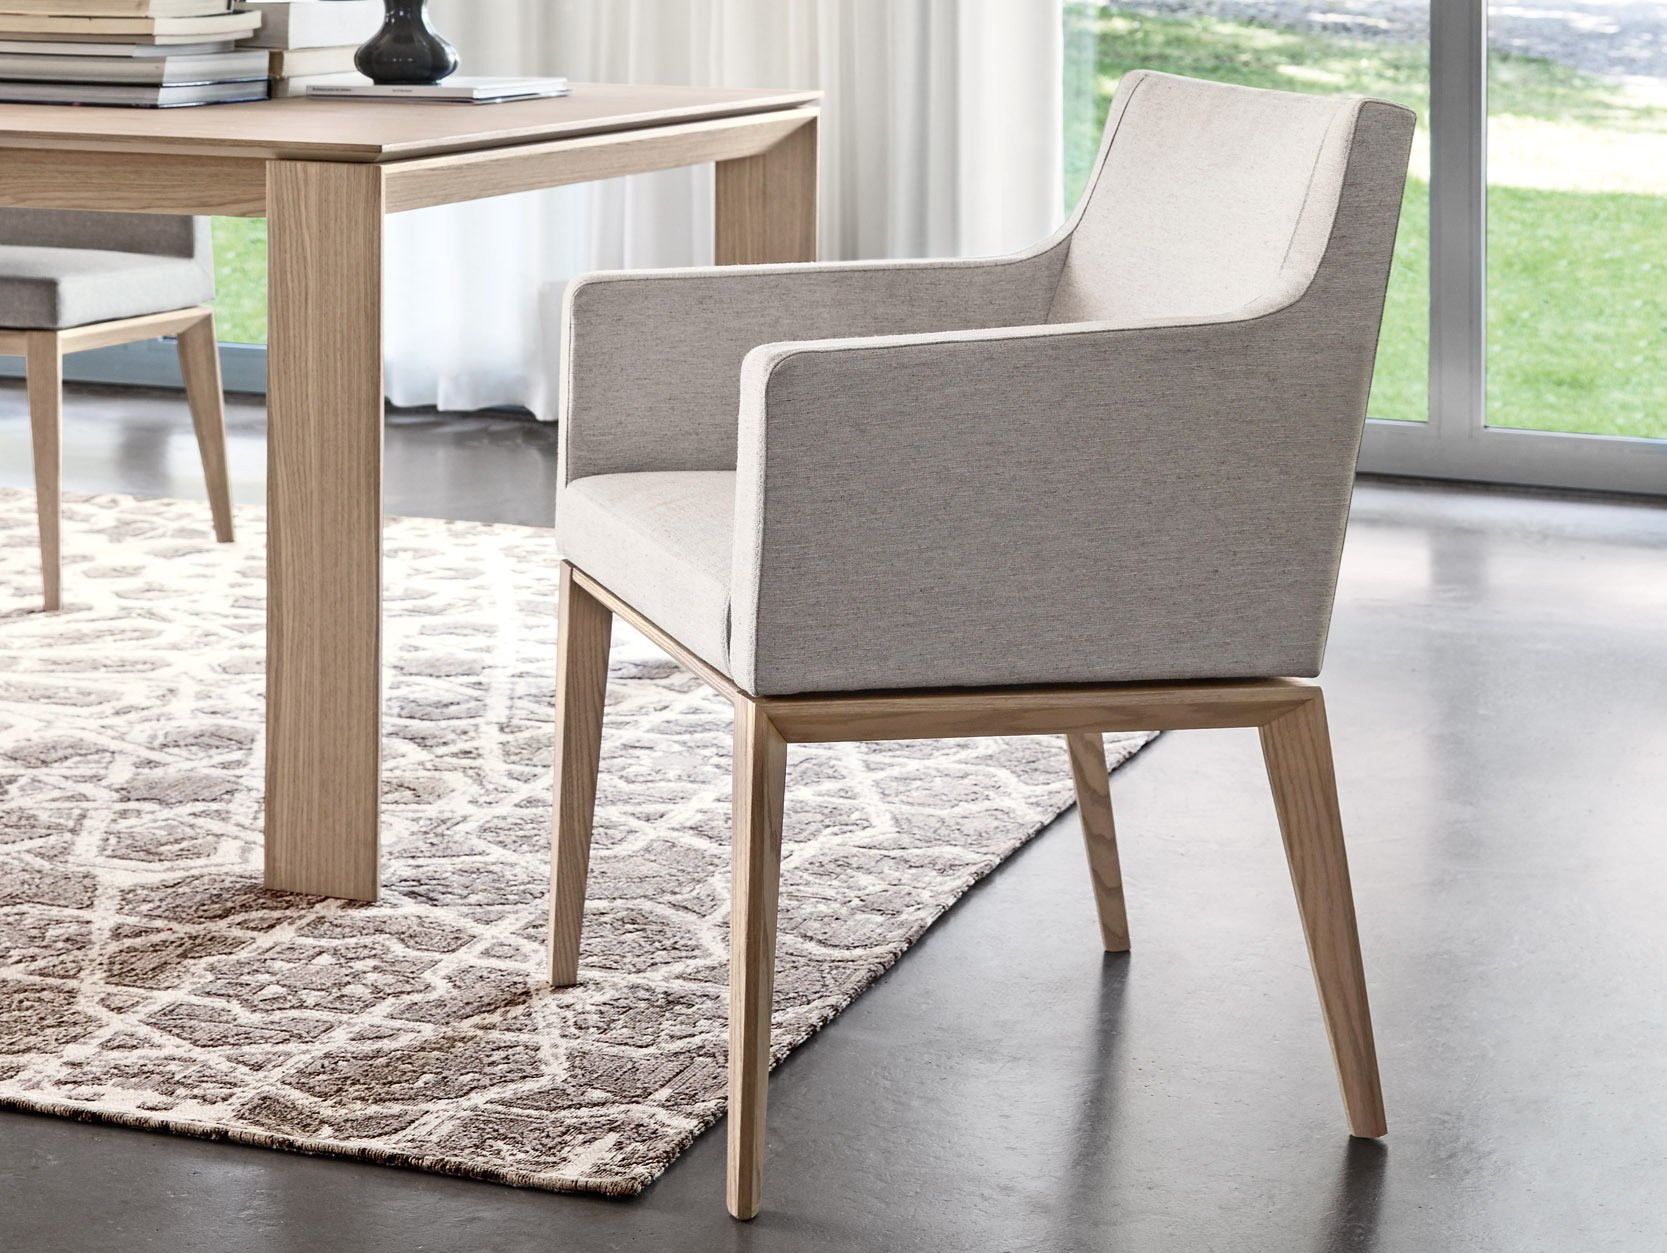 Bess poltroncina by calligaris for Poltrone calligaris prezzi